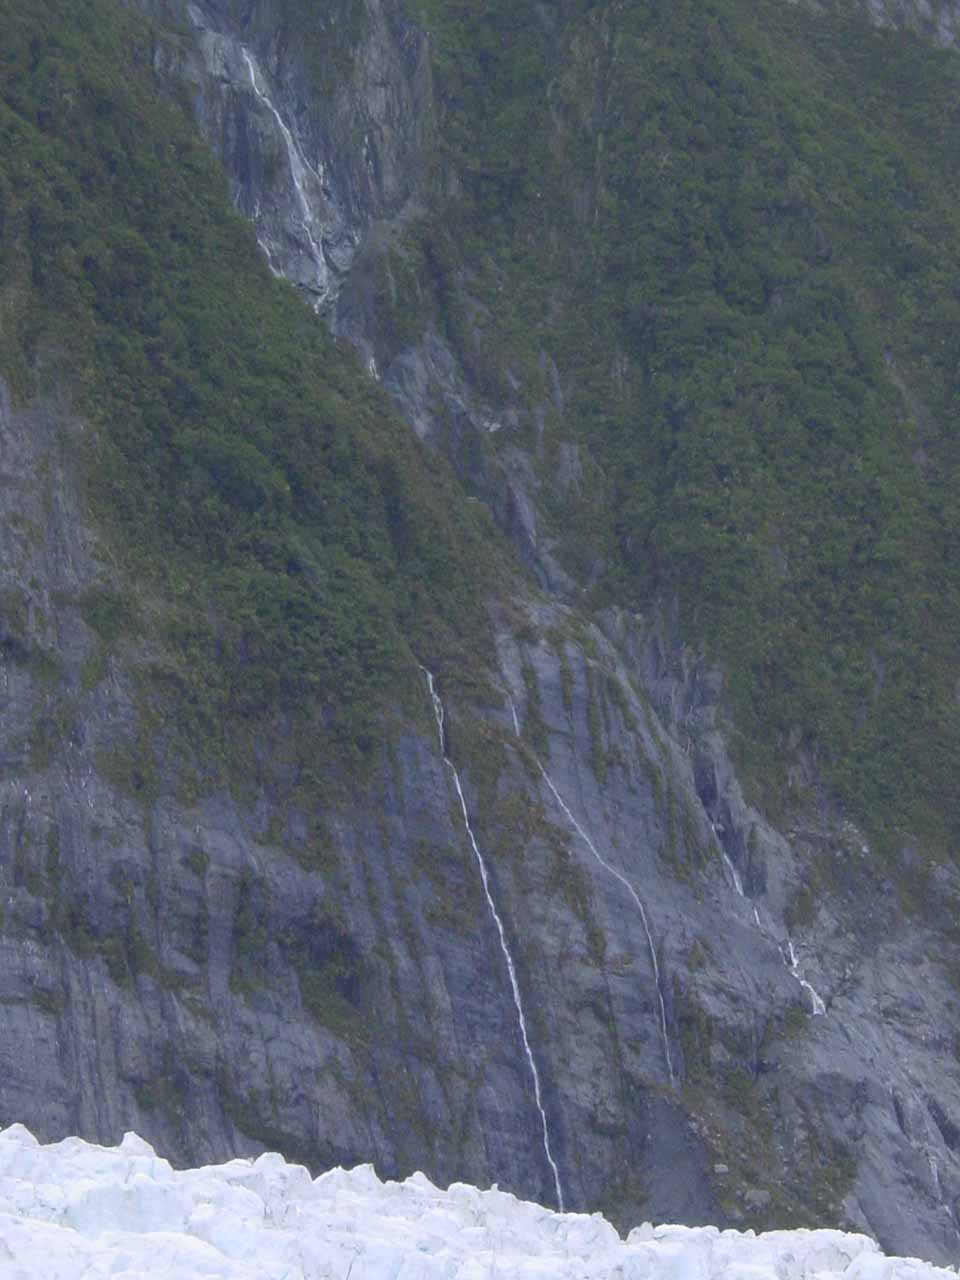 One of several thin waterfalls spilling into the Franz Josef Glacier